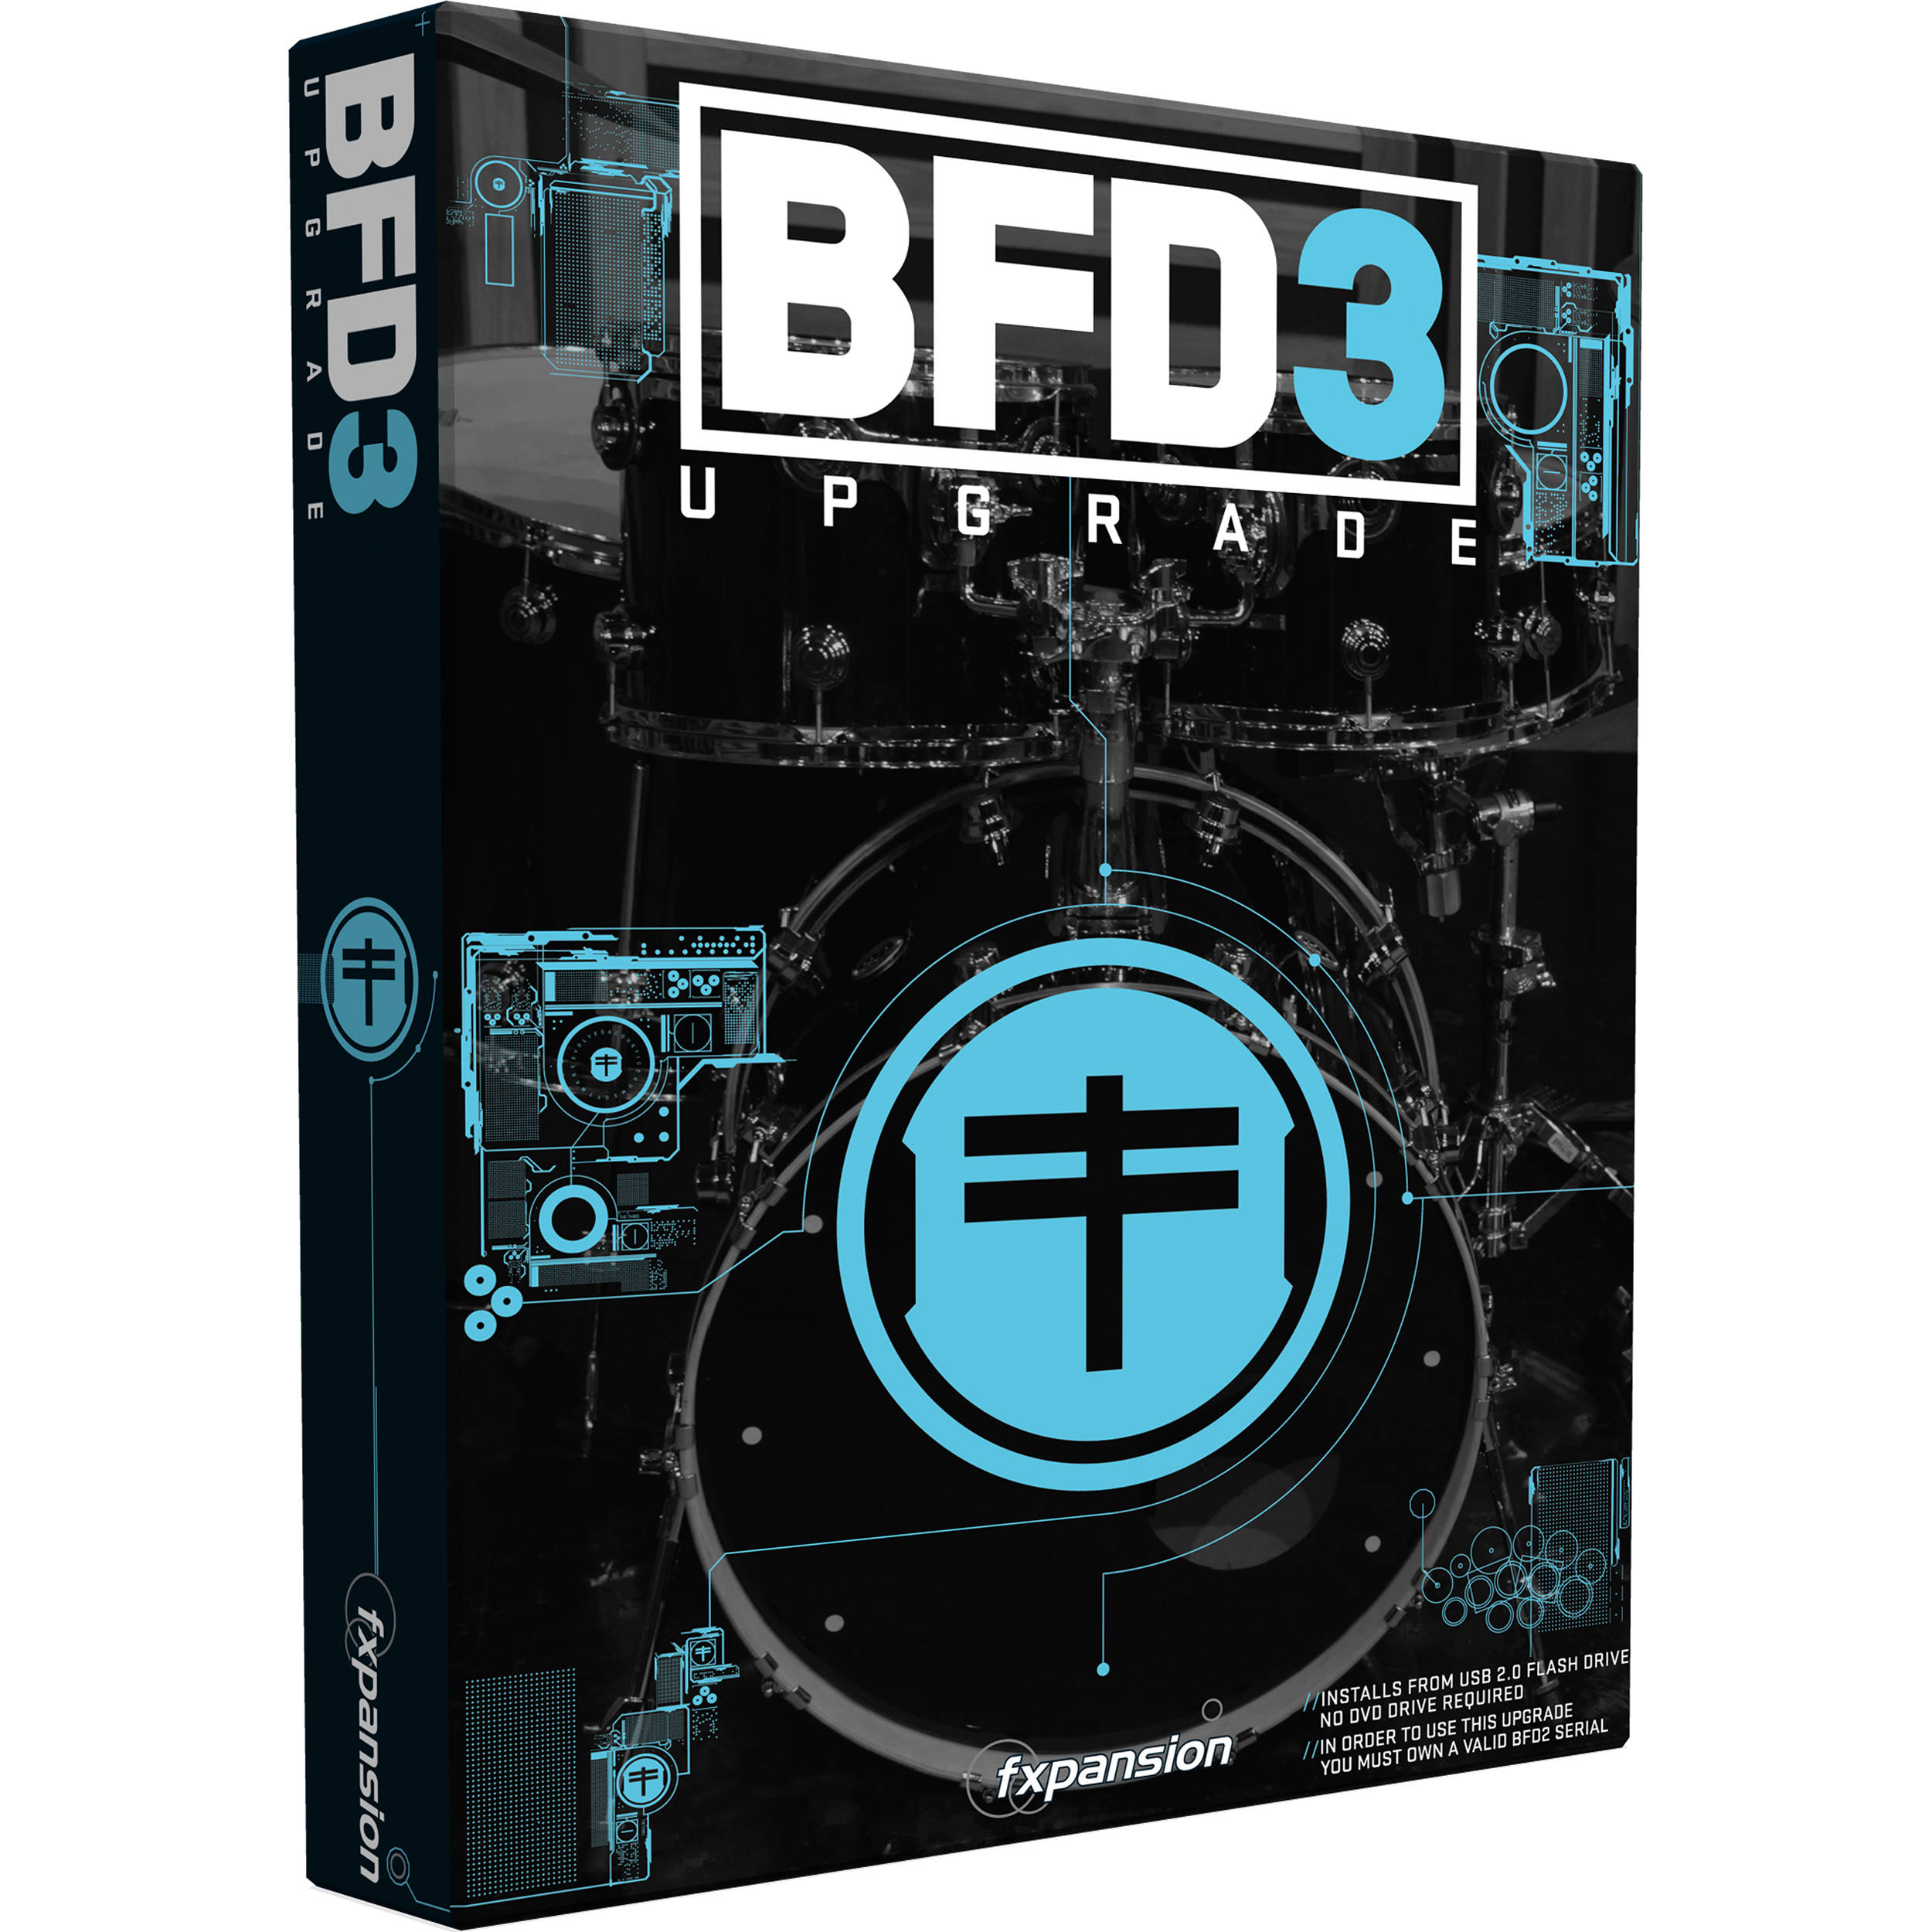 bfd3 drum software